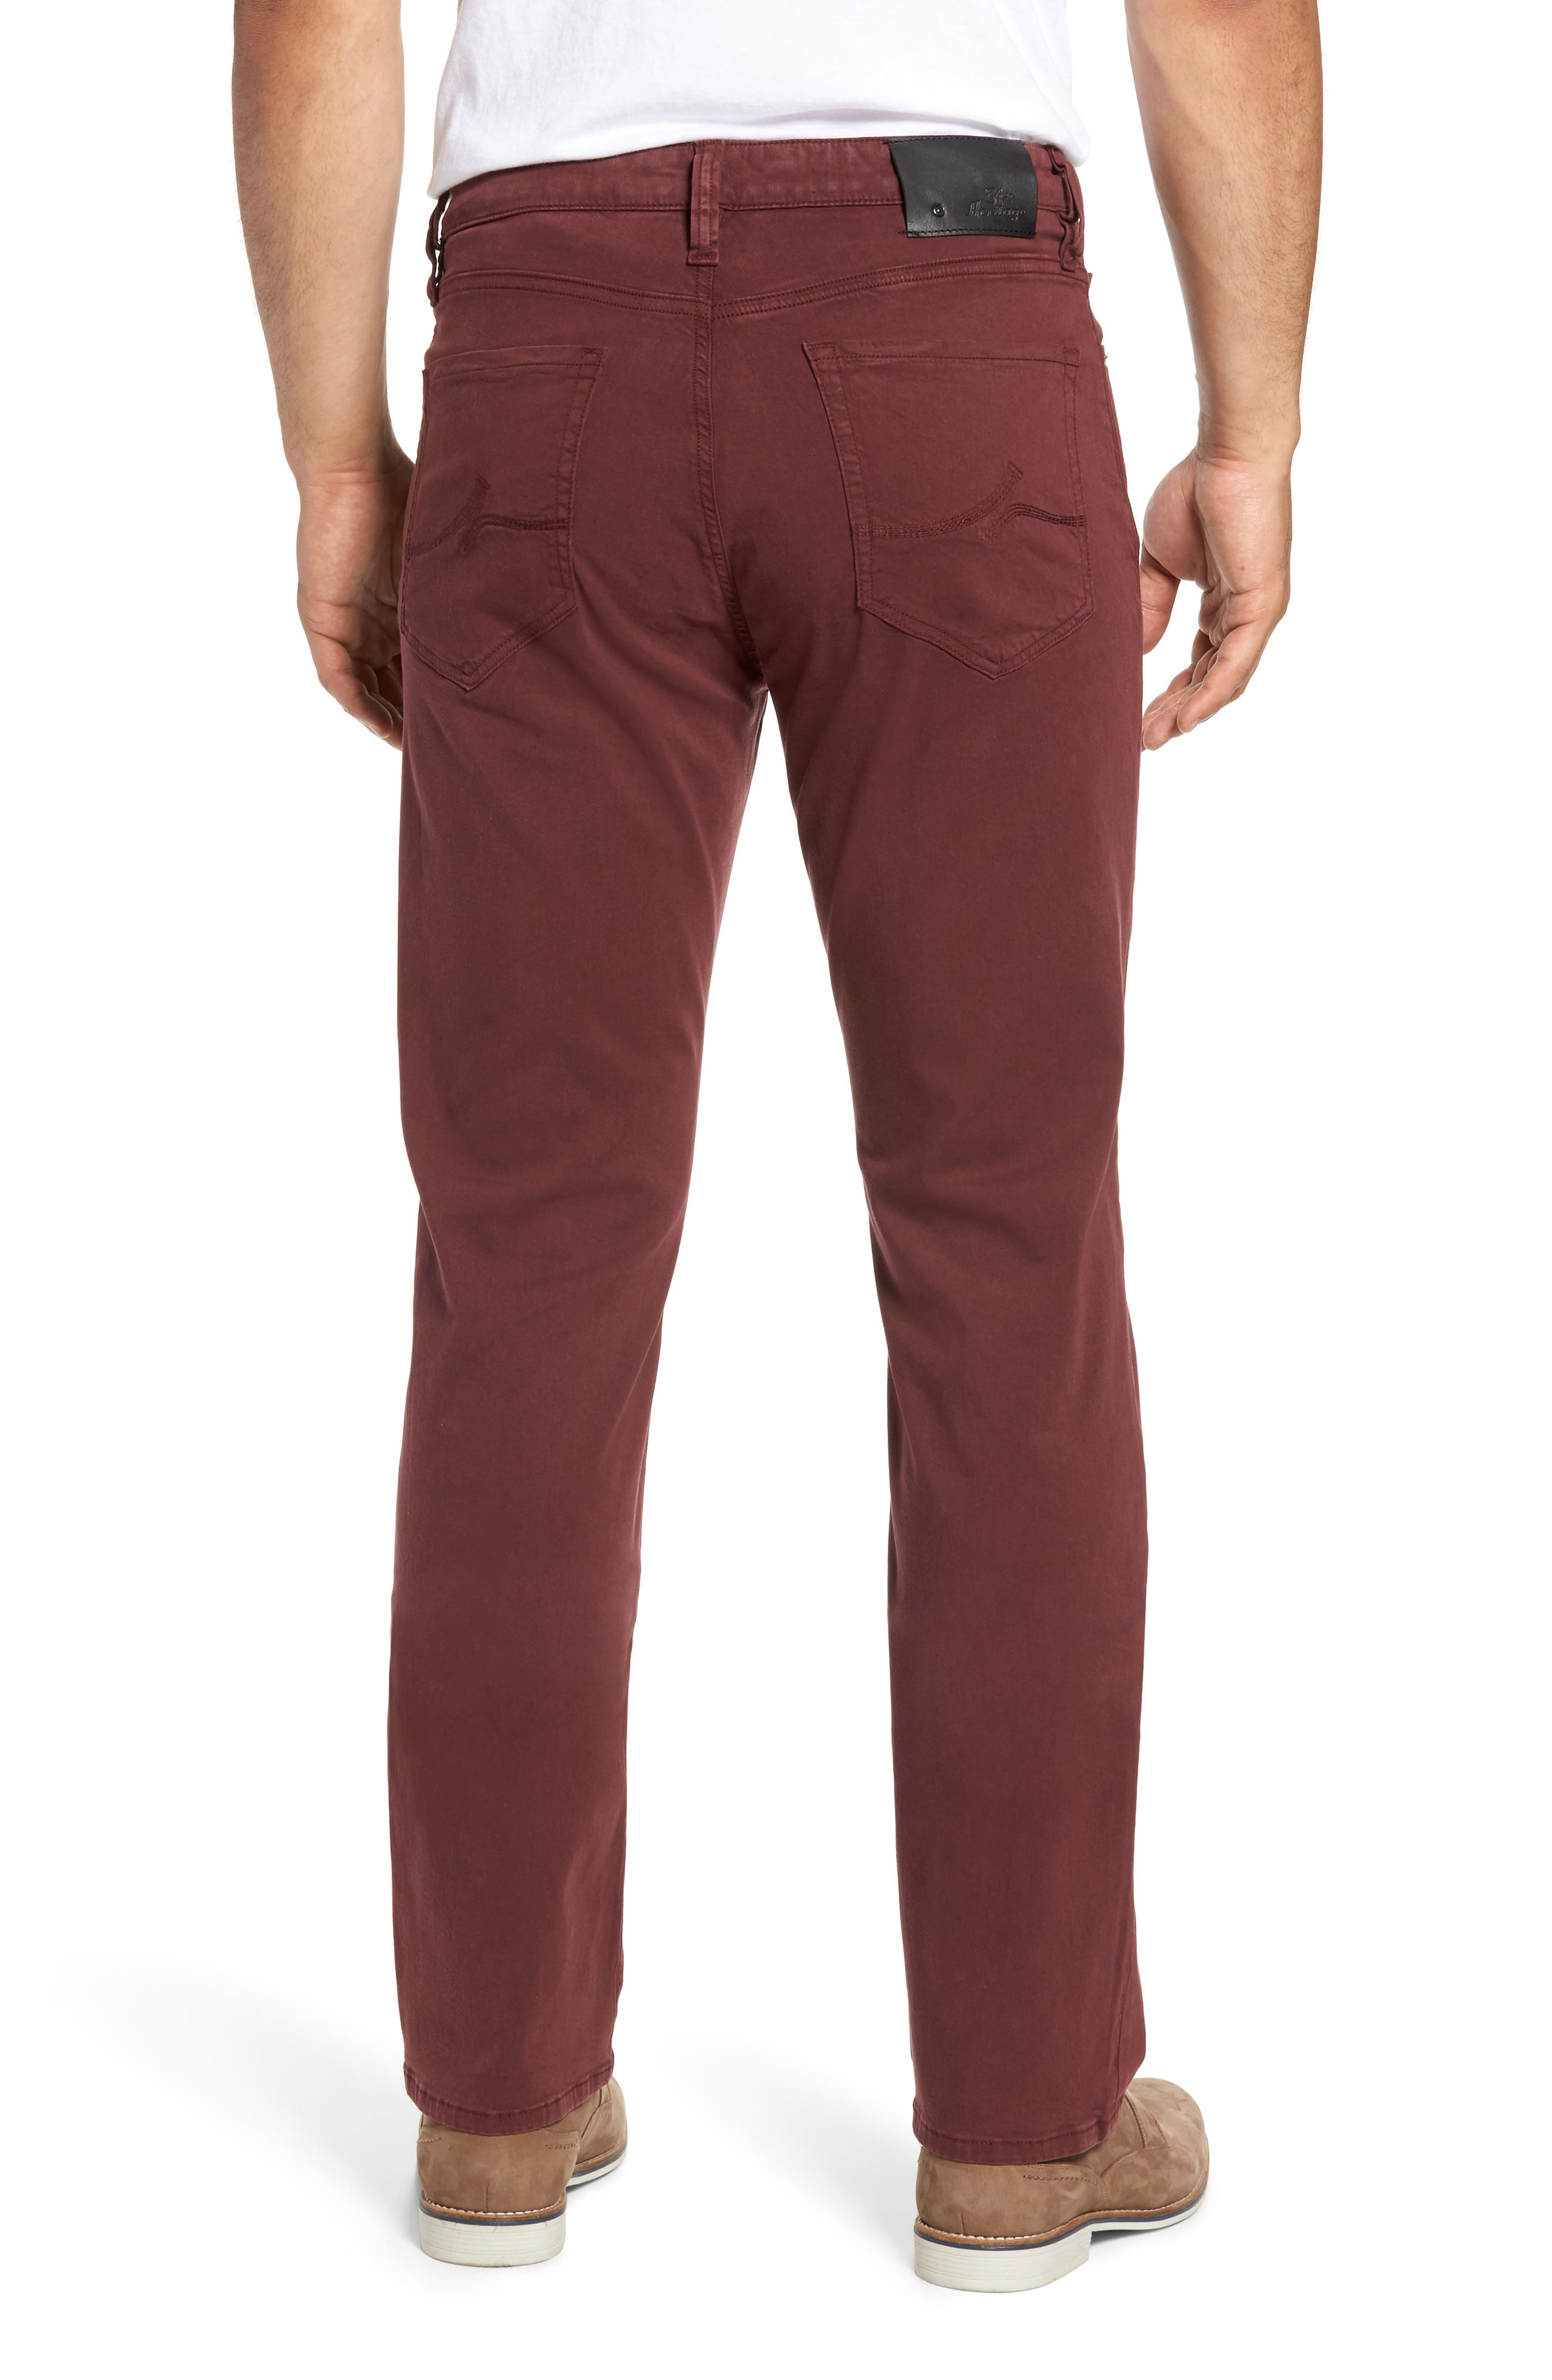 Charisma Relaxed Fit Pants,                             Alternate thumbnail 2, color,                             BORDEAUX TWILL